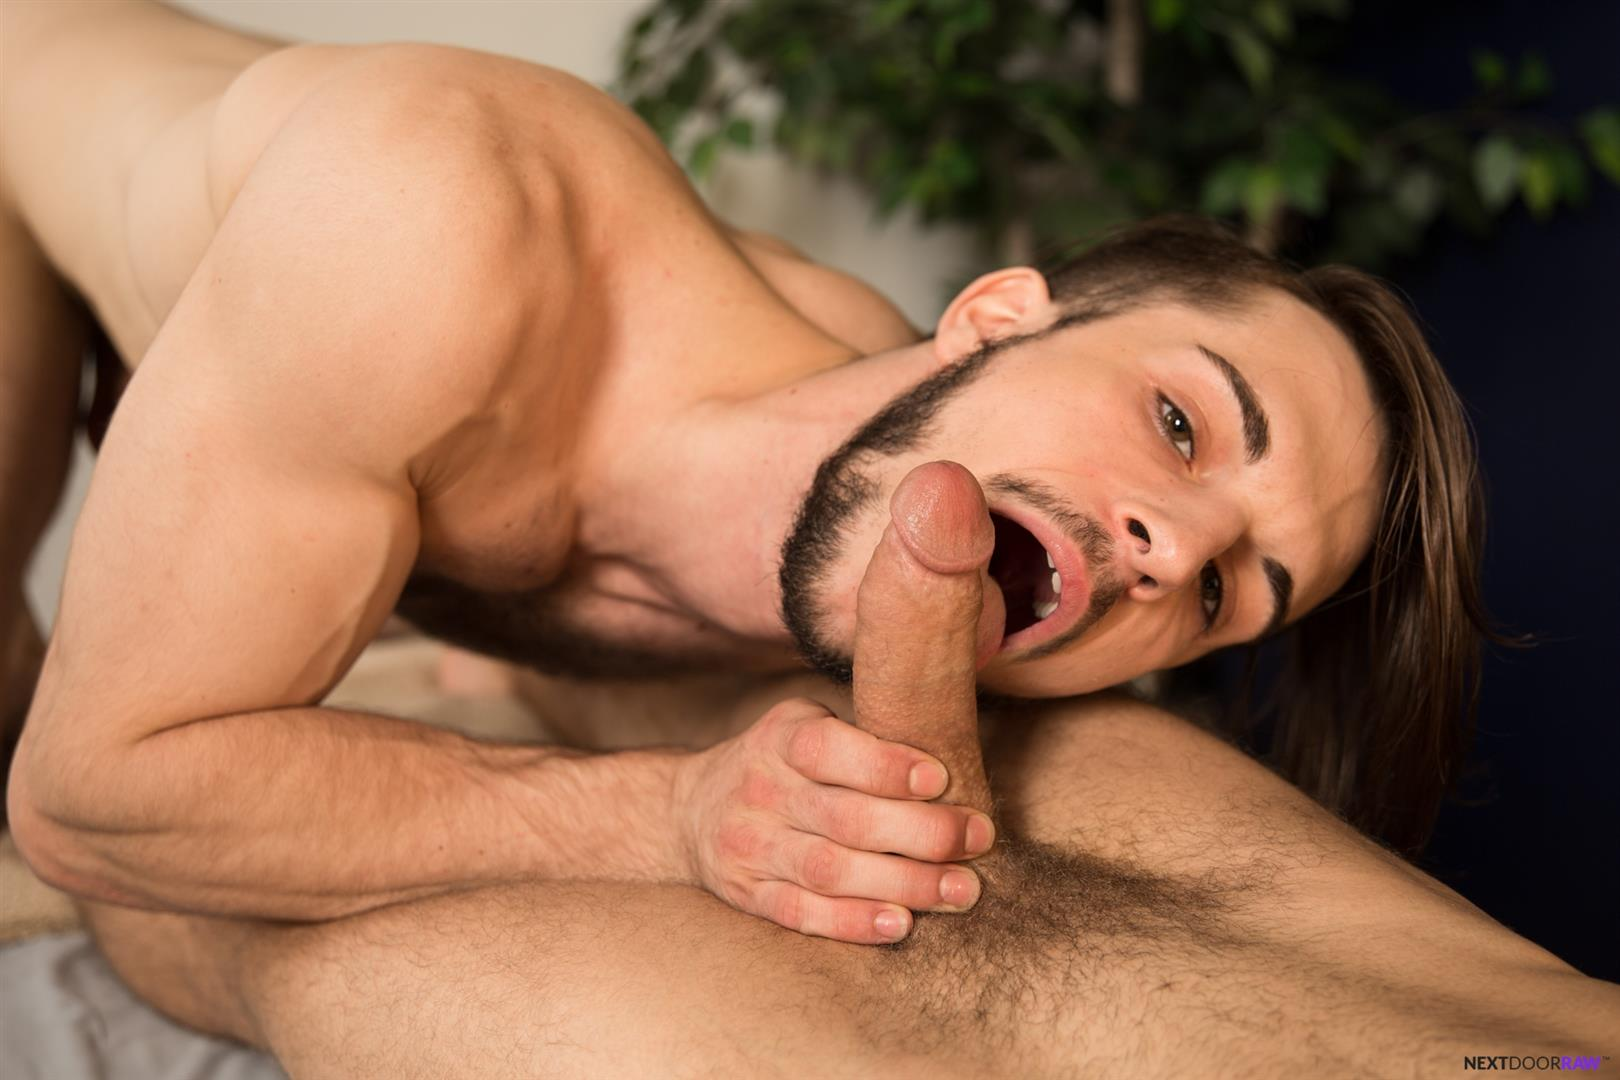 Next-Door-Raw-Tyler-Carver-and-Donte-Thick-Bareback-Massage-07 Tyler Carver and Donte Thick In A Bareback Massage